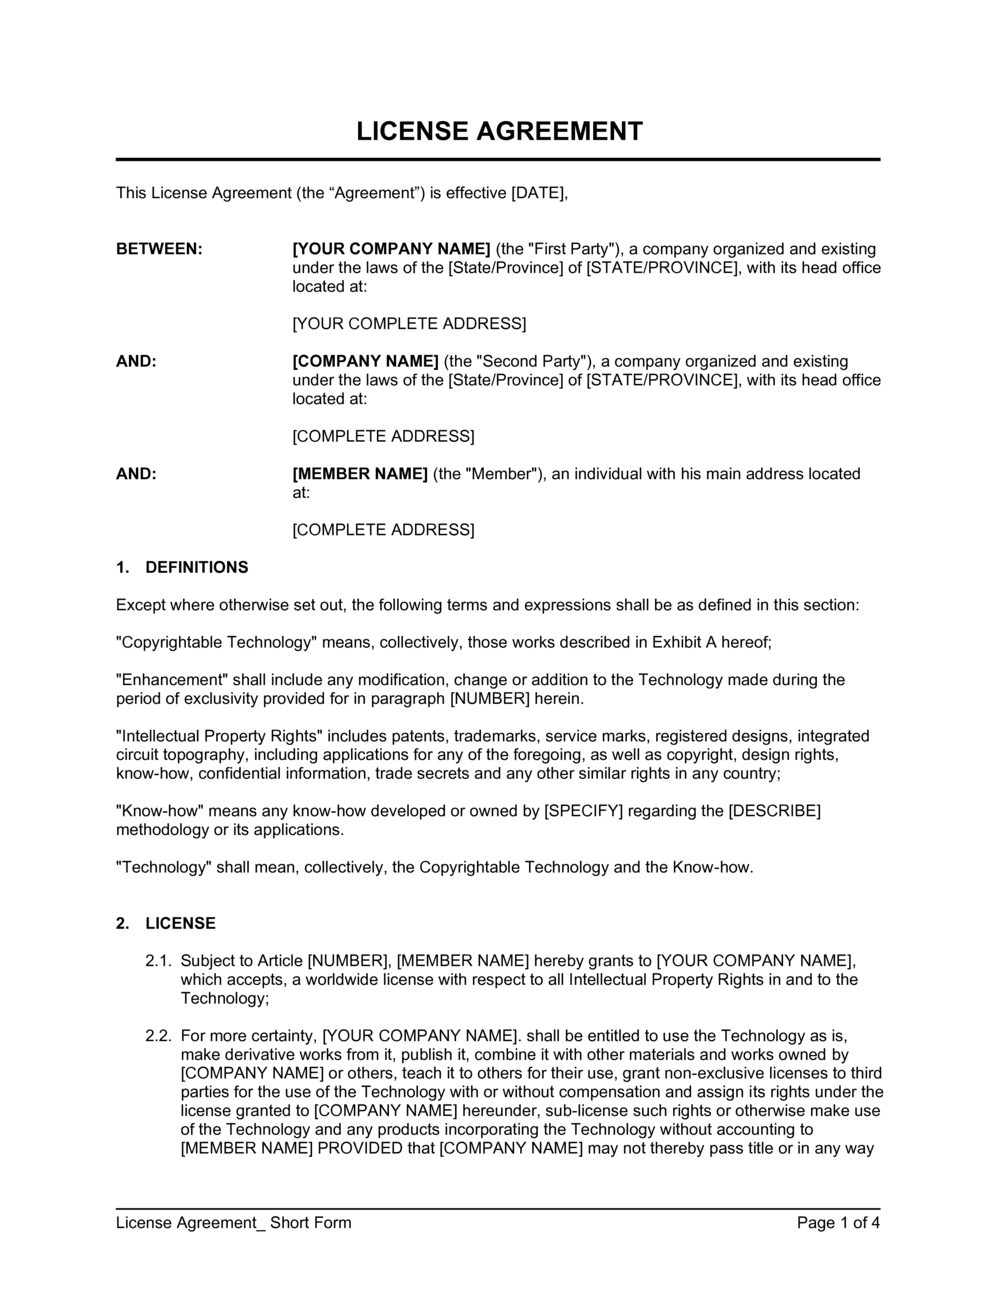 Business-in-a-Box's License Agreement Short Form Template